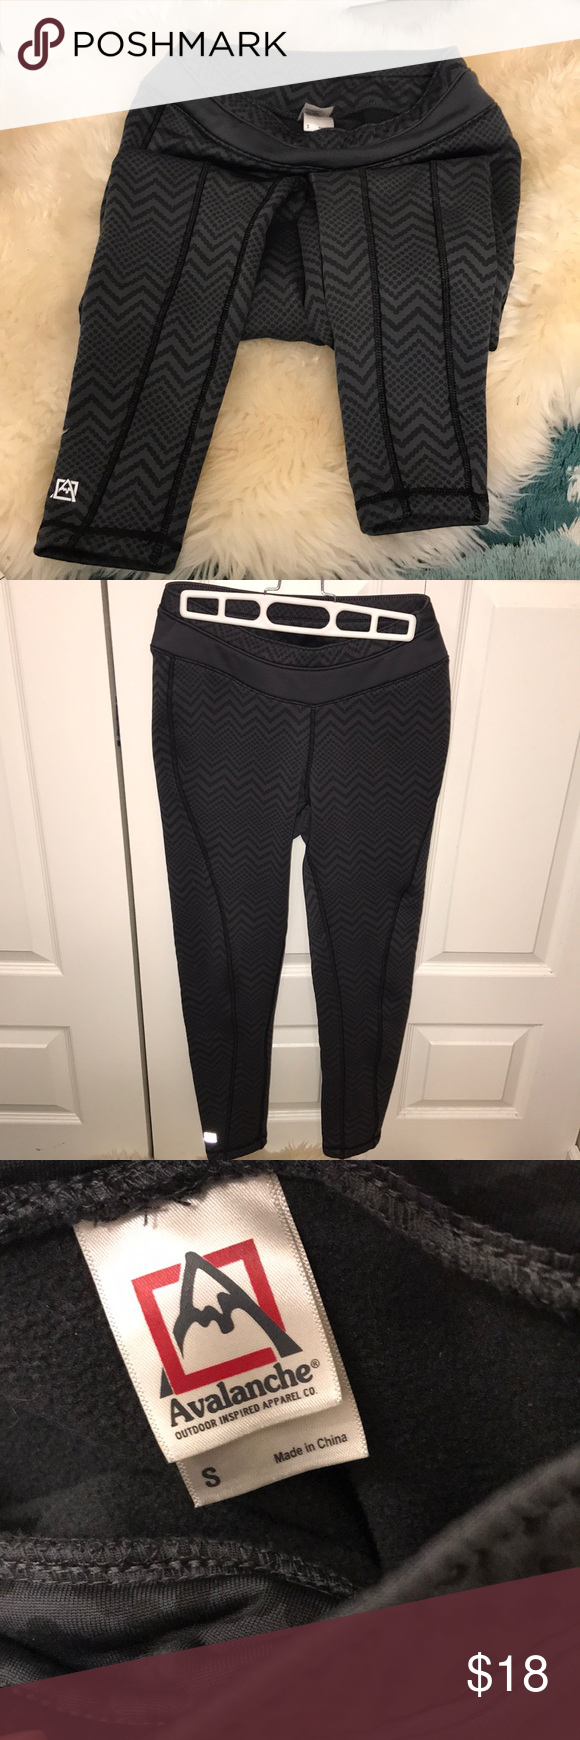 697af7a8bab6b1 Avalanche Mogul Fleece Leggings Ski Snowboard S Avalanche Mogul Fleece  Leggings Ideal for Winter Ski/Hike/Walk/Snow Sports. Thick fast wicking  brushed ...